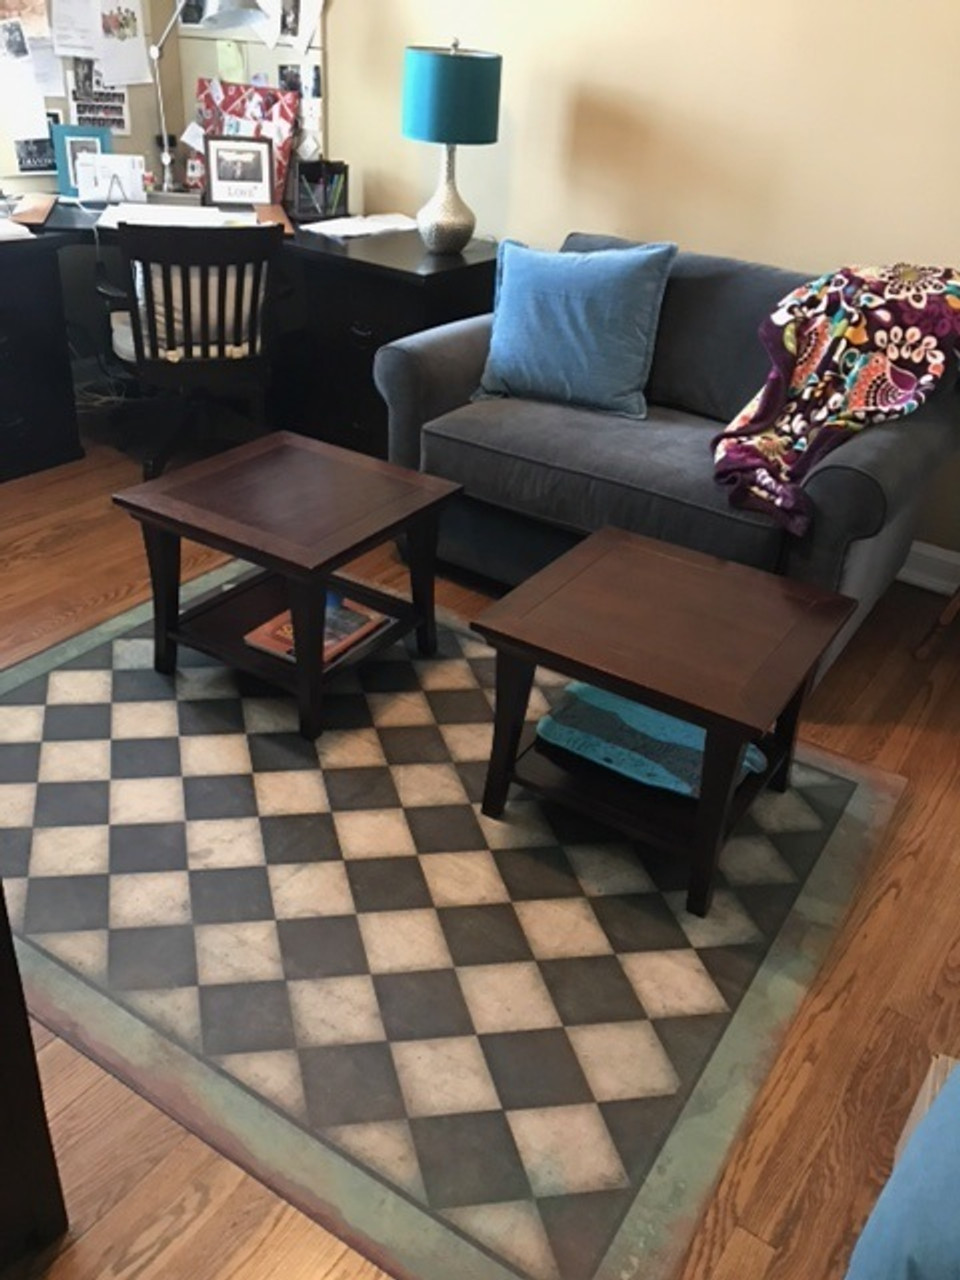 customer in home use of checkmate